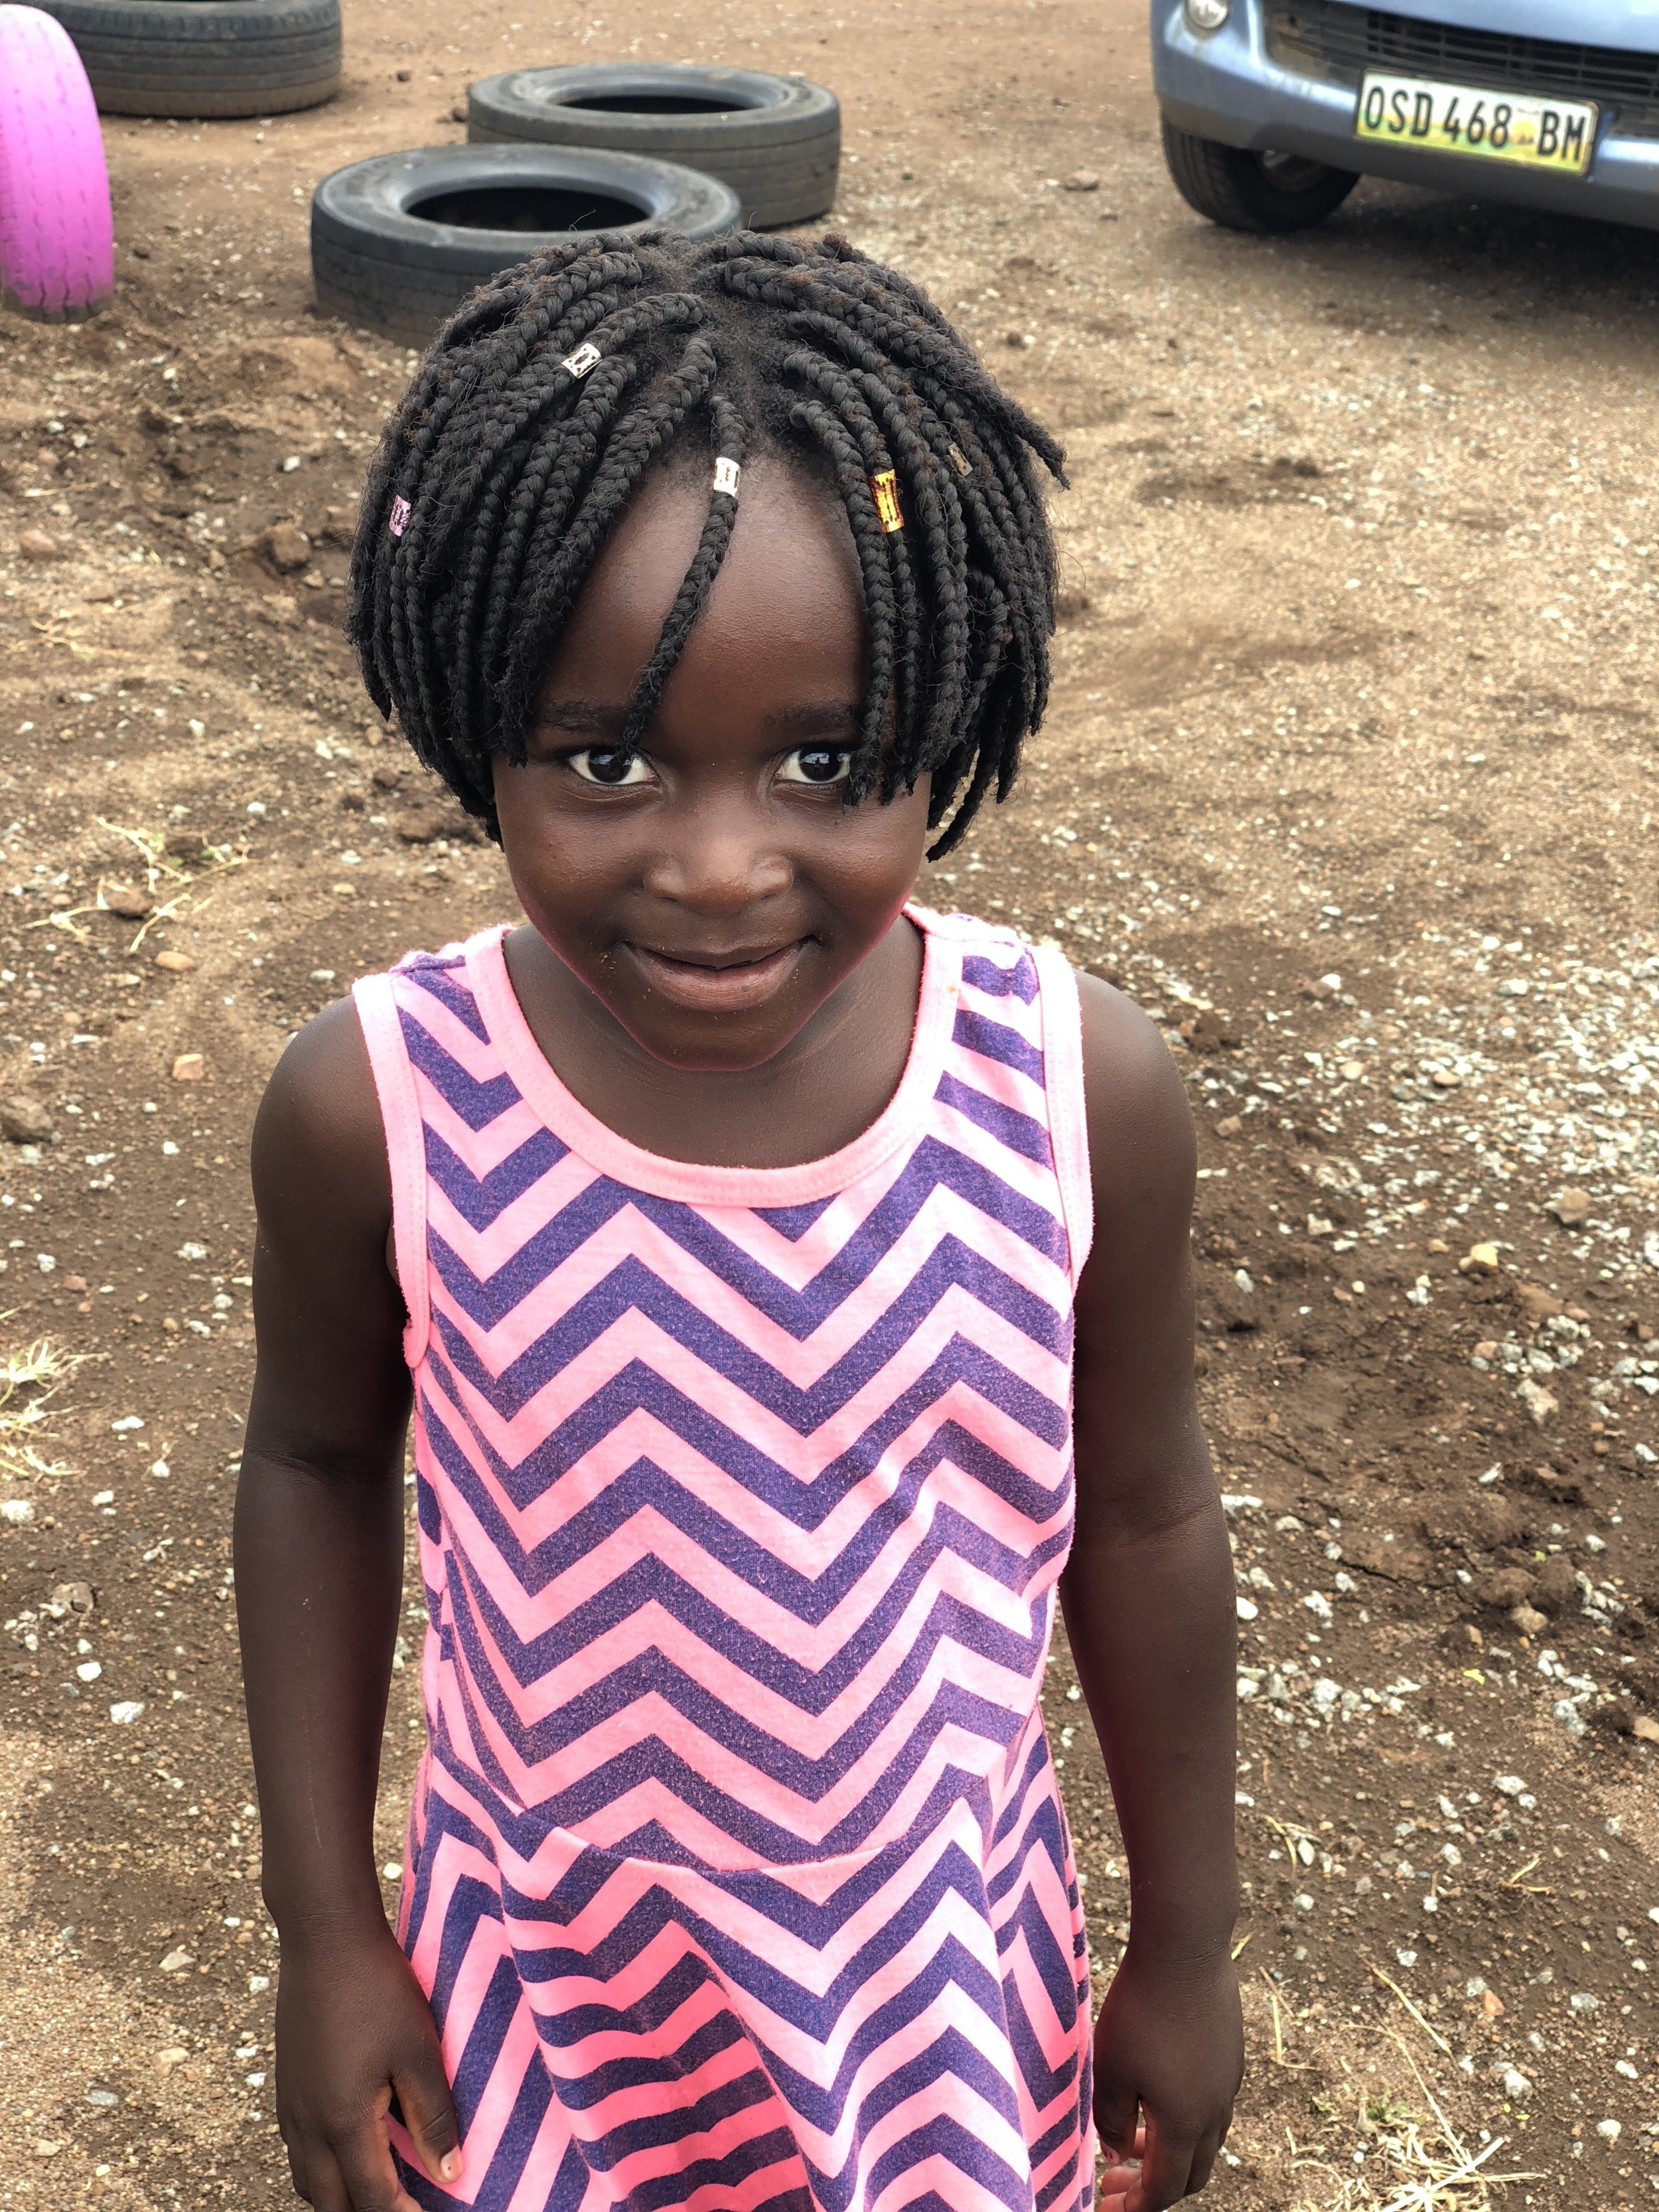 Step 4: Share with friends and family about how you are making a lasting impact in the lives of orphaned children in Swaziland, Africa. Your funds are allowing these kids to escape their circumstances and chase their dreams! Thank you!